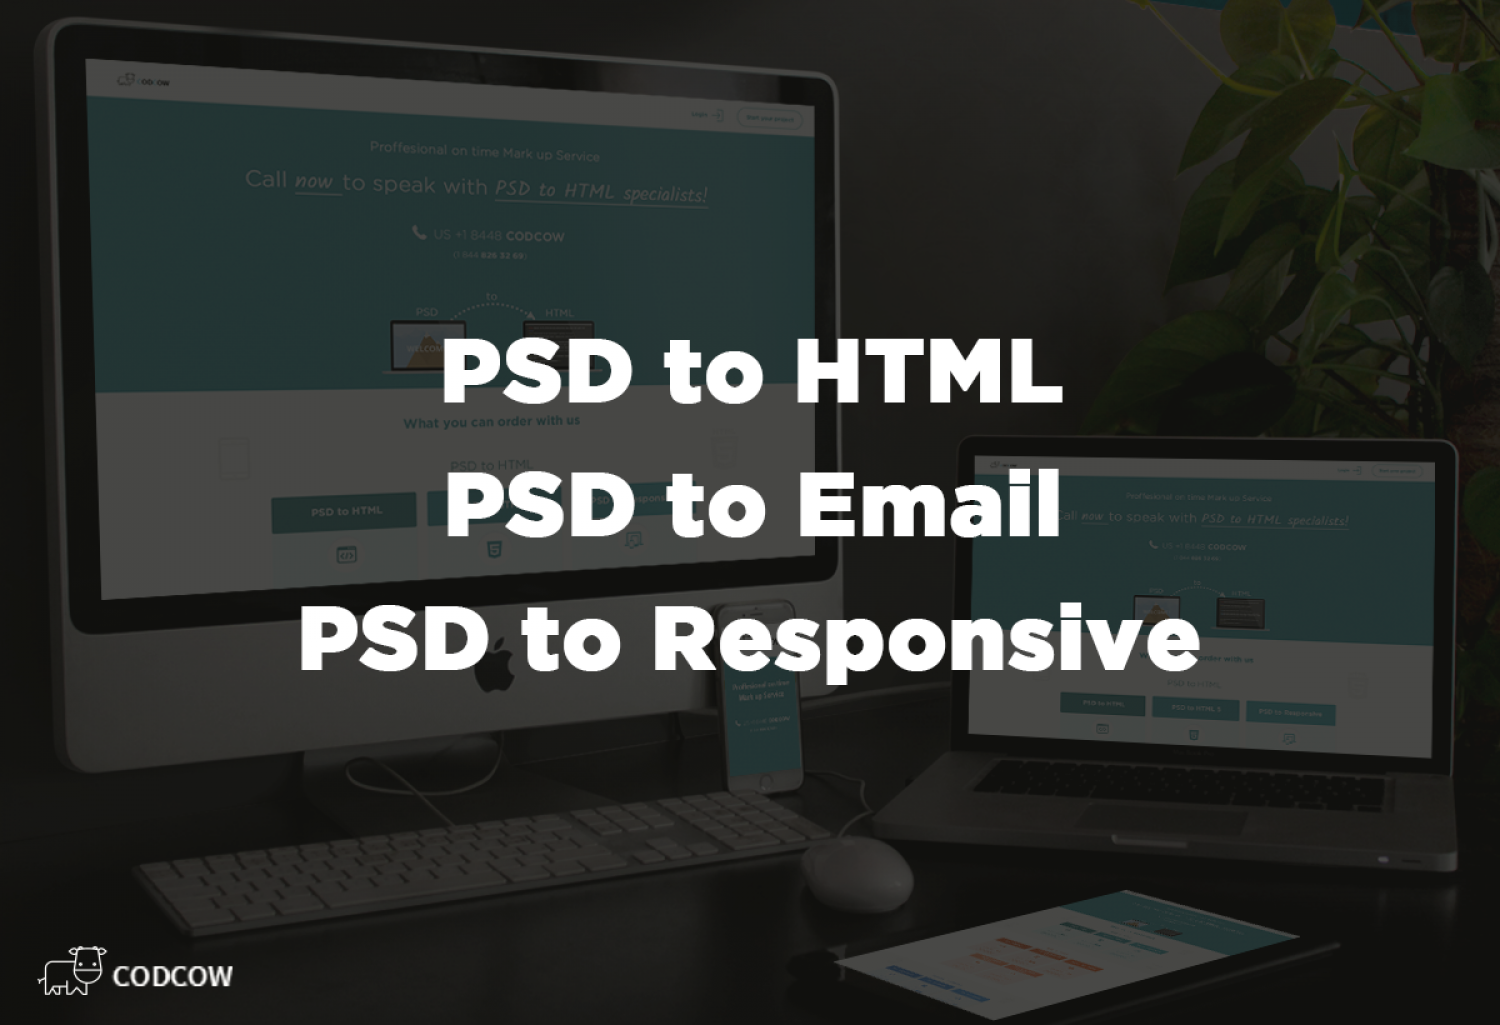 PSD TO HTML by Codcow.com Infographic